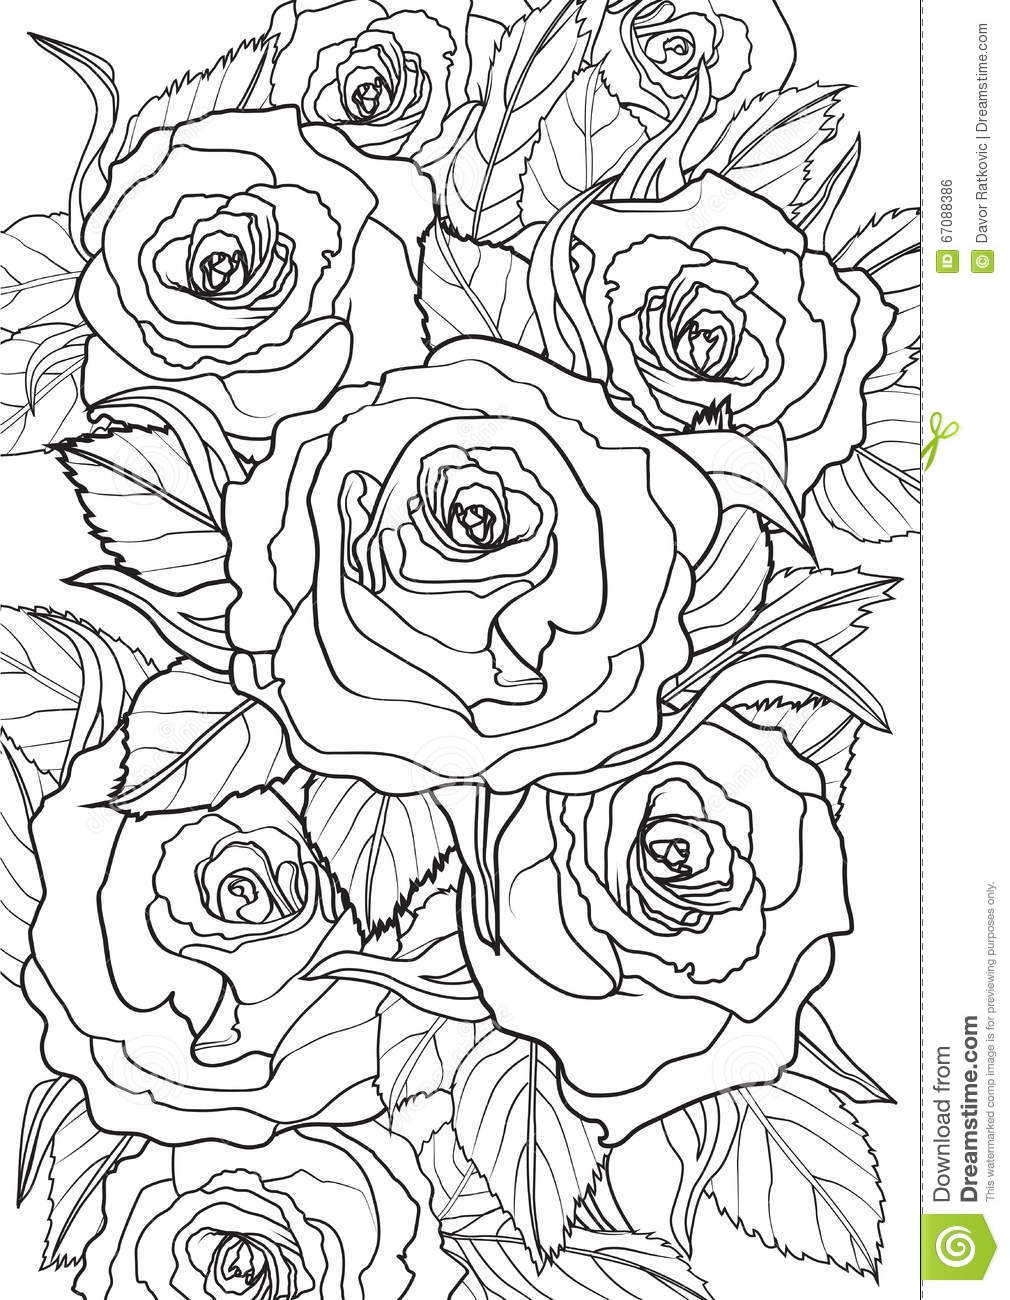 Roses stock vector. Illustration of relax, floral, graphic